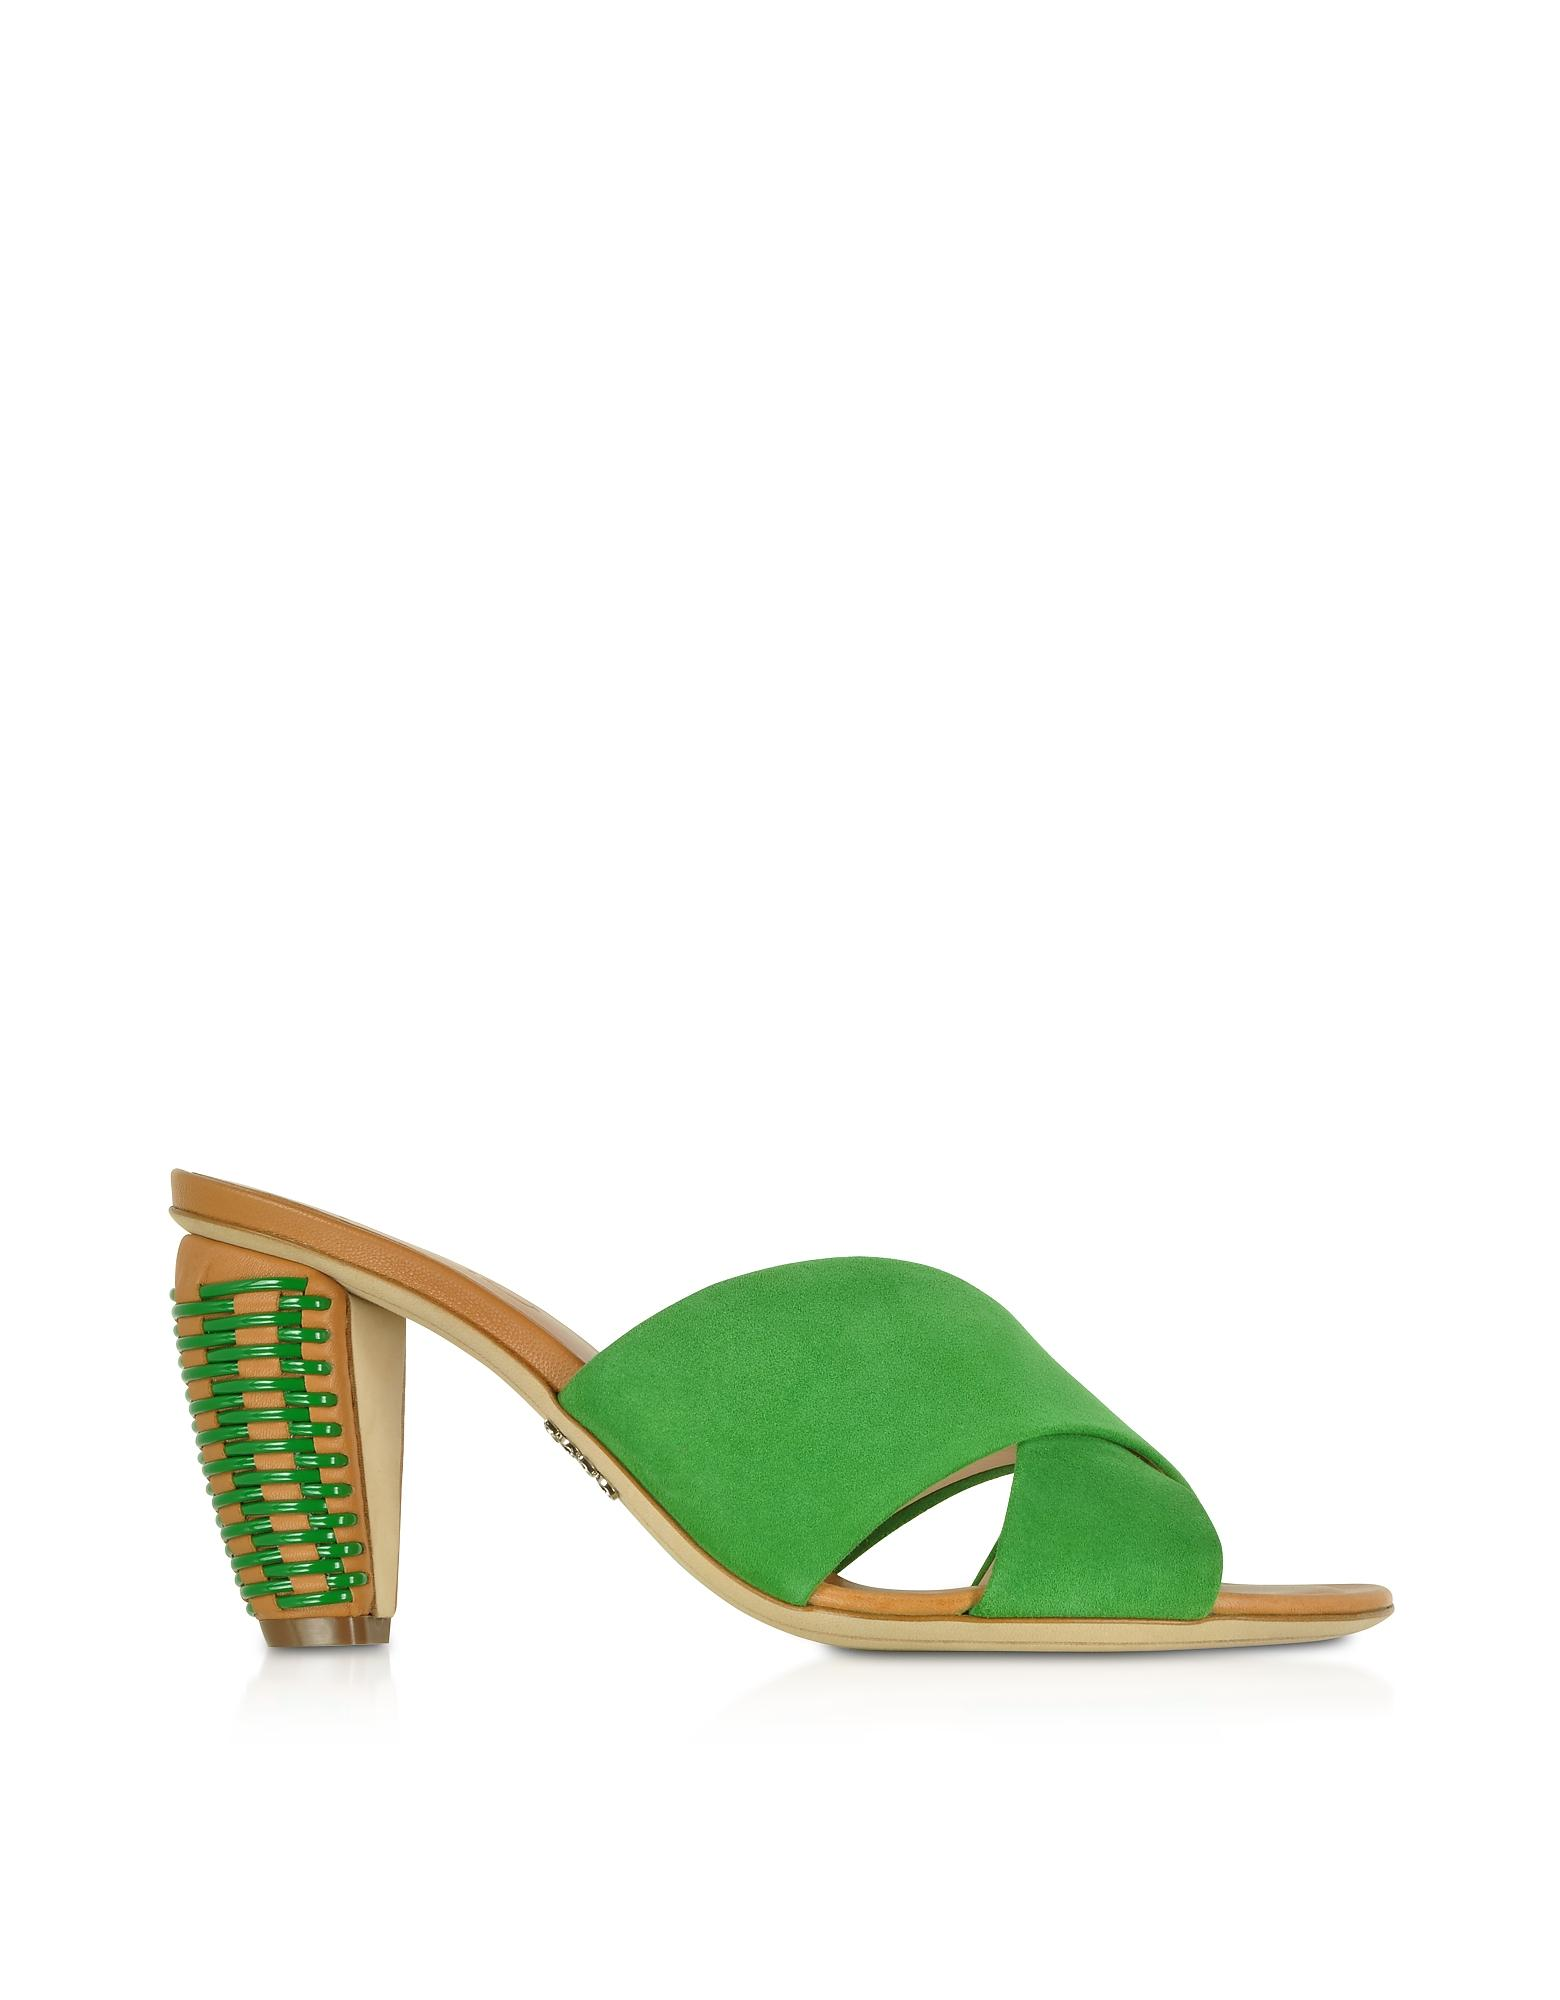 0087af04c6000e Rodo - Bright Green Suede 8mm Criss-cross Slide Sandals - Lyst. View  fullscreen